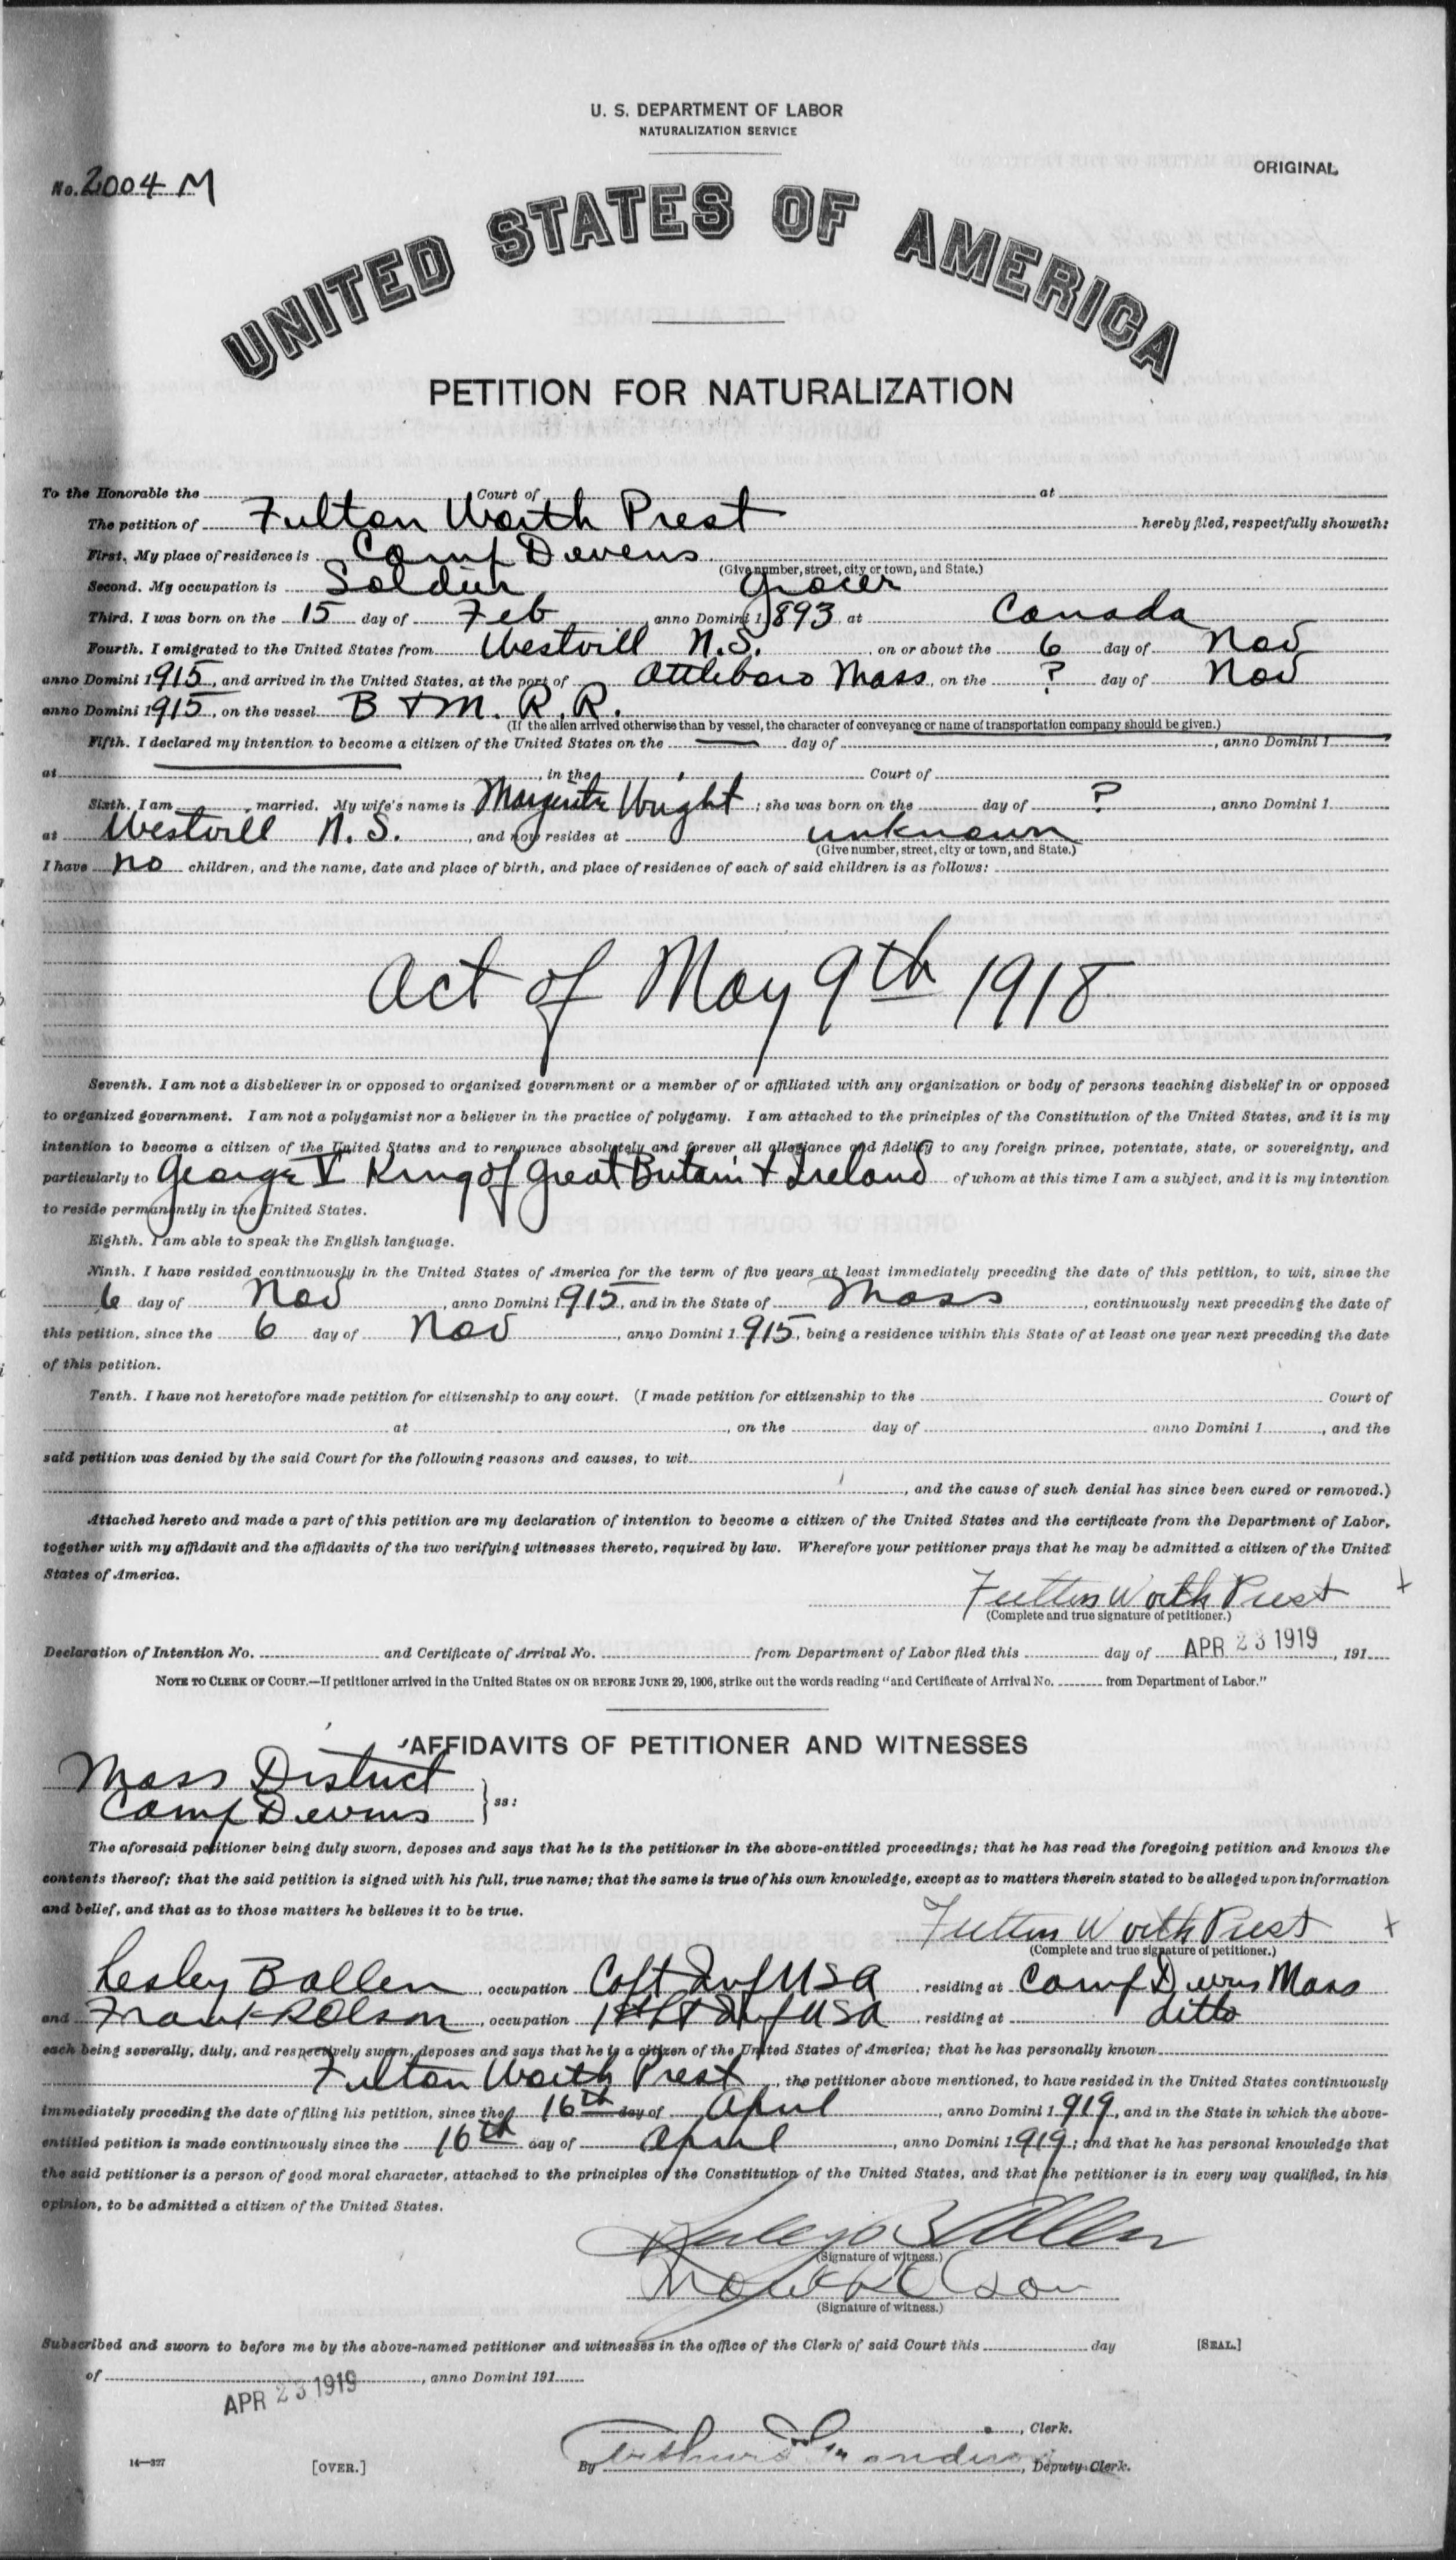 Petition for Naturalization of Fulton Worth Prest